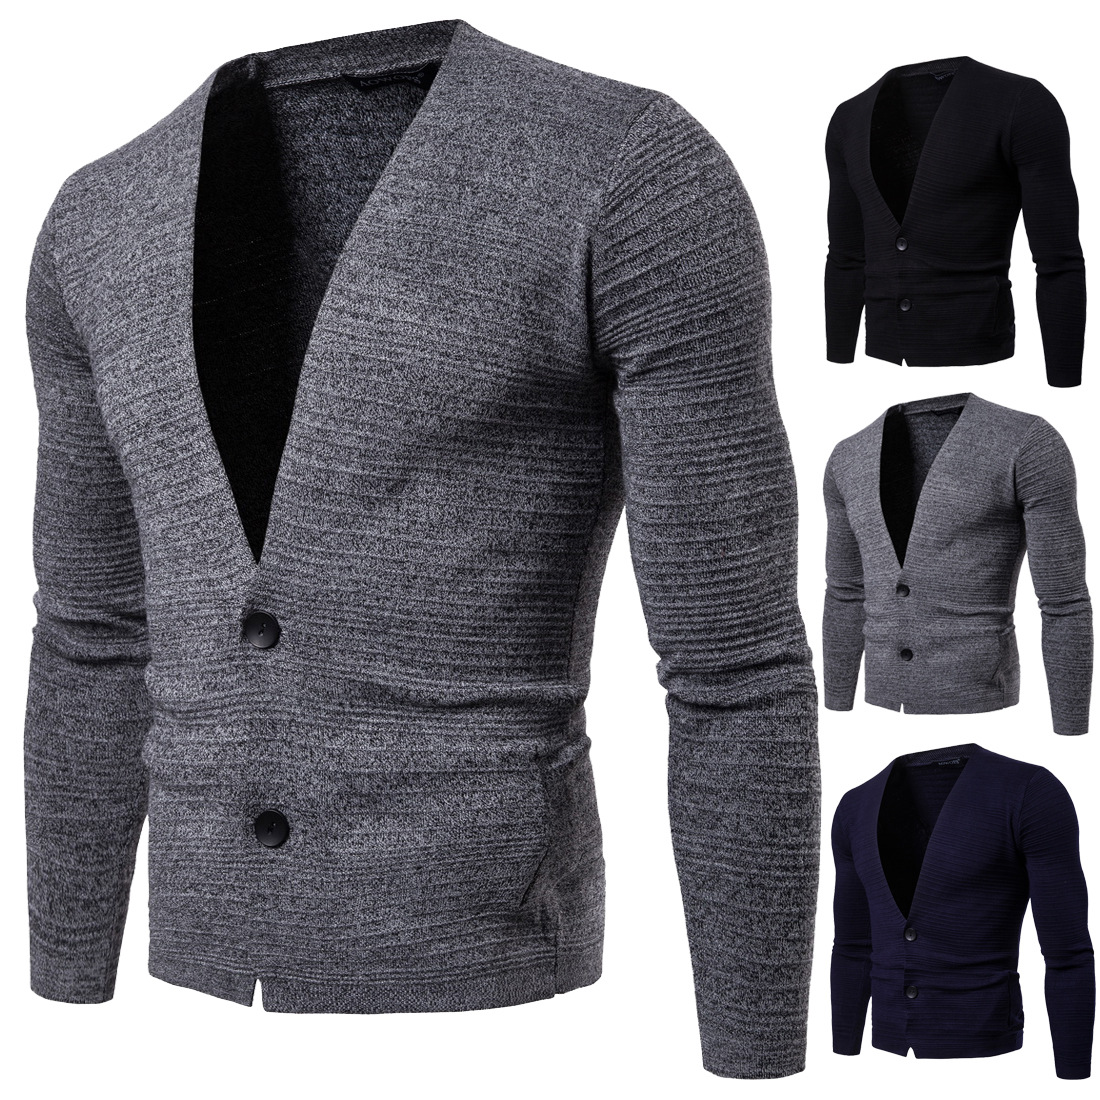 YM010 New Fashion Autumn Clothing Young Men's Pullovers Solid-color Slim Knitted Cardigan Sweater Coat